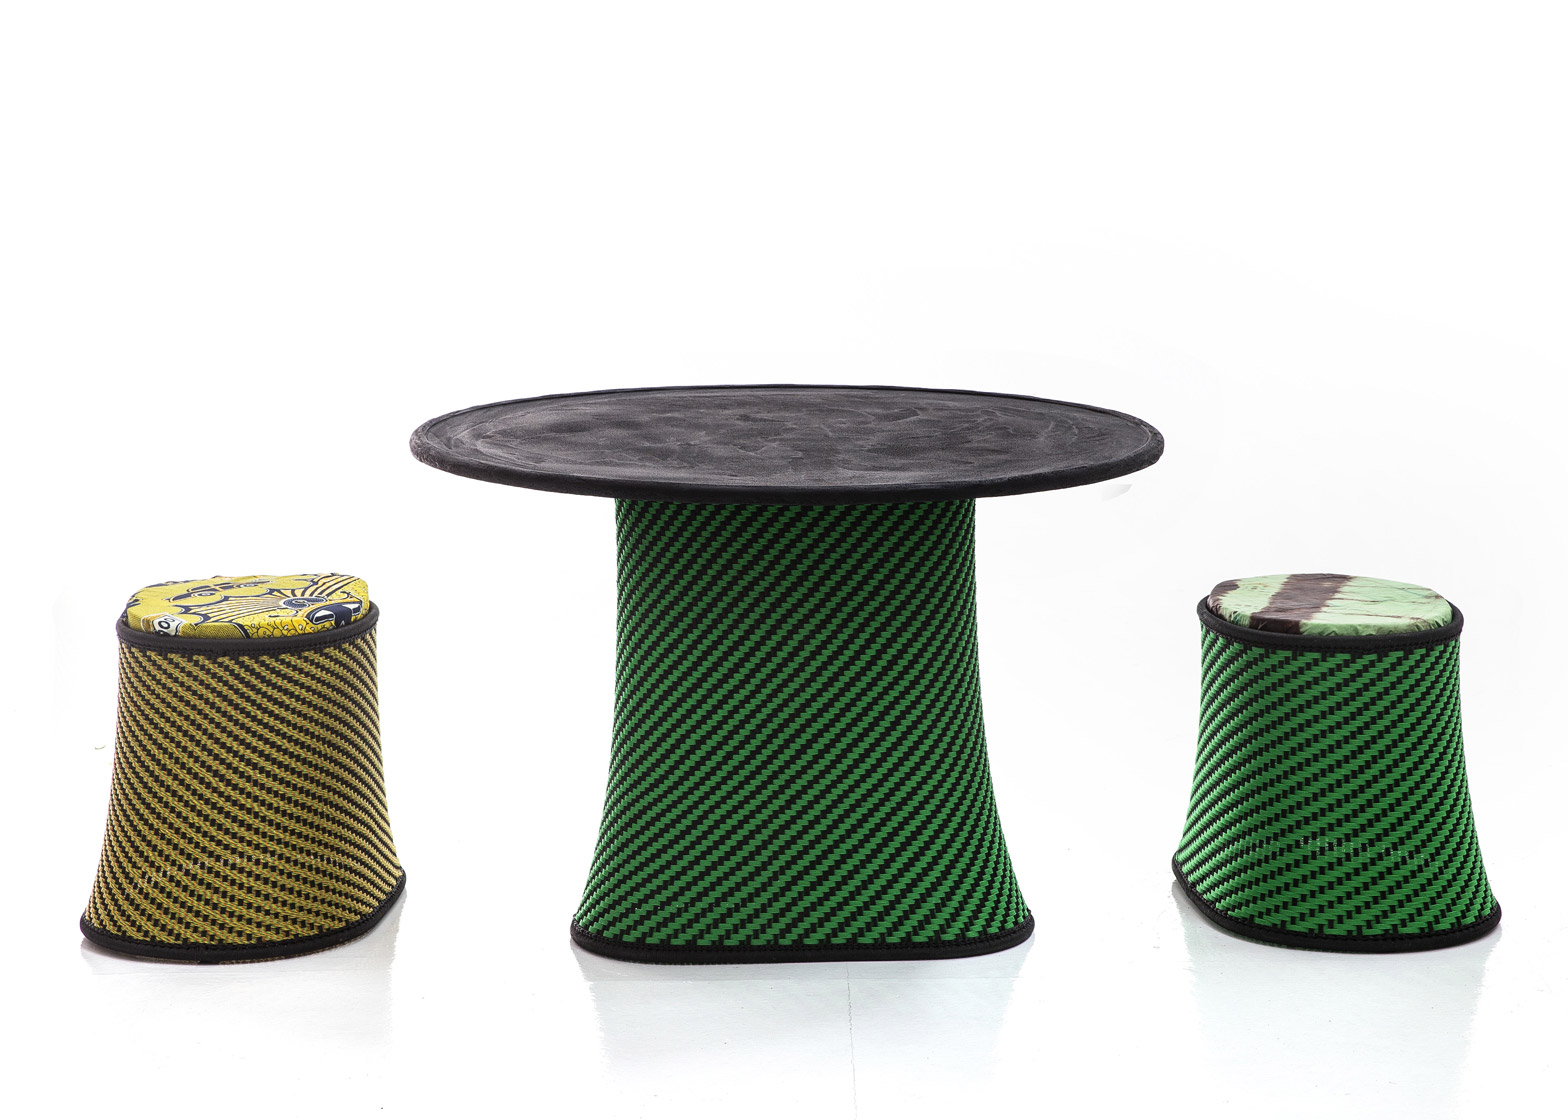 baobab-marc-thorpe-table-seating-furniture-moroso-milan-design-week-2016_dezeen_1568_0.jpg